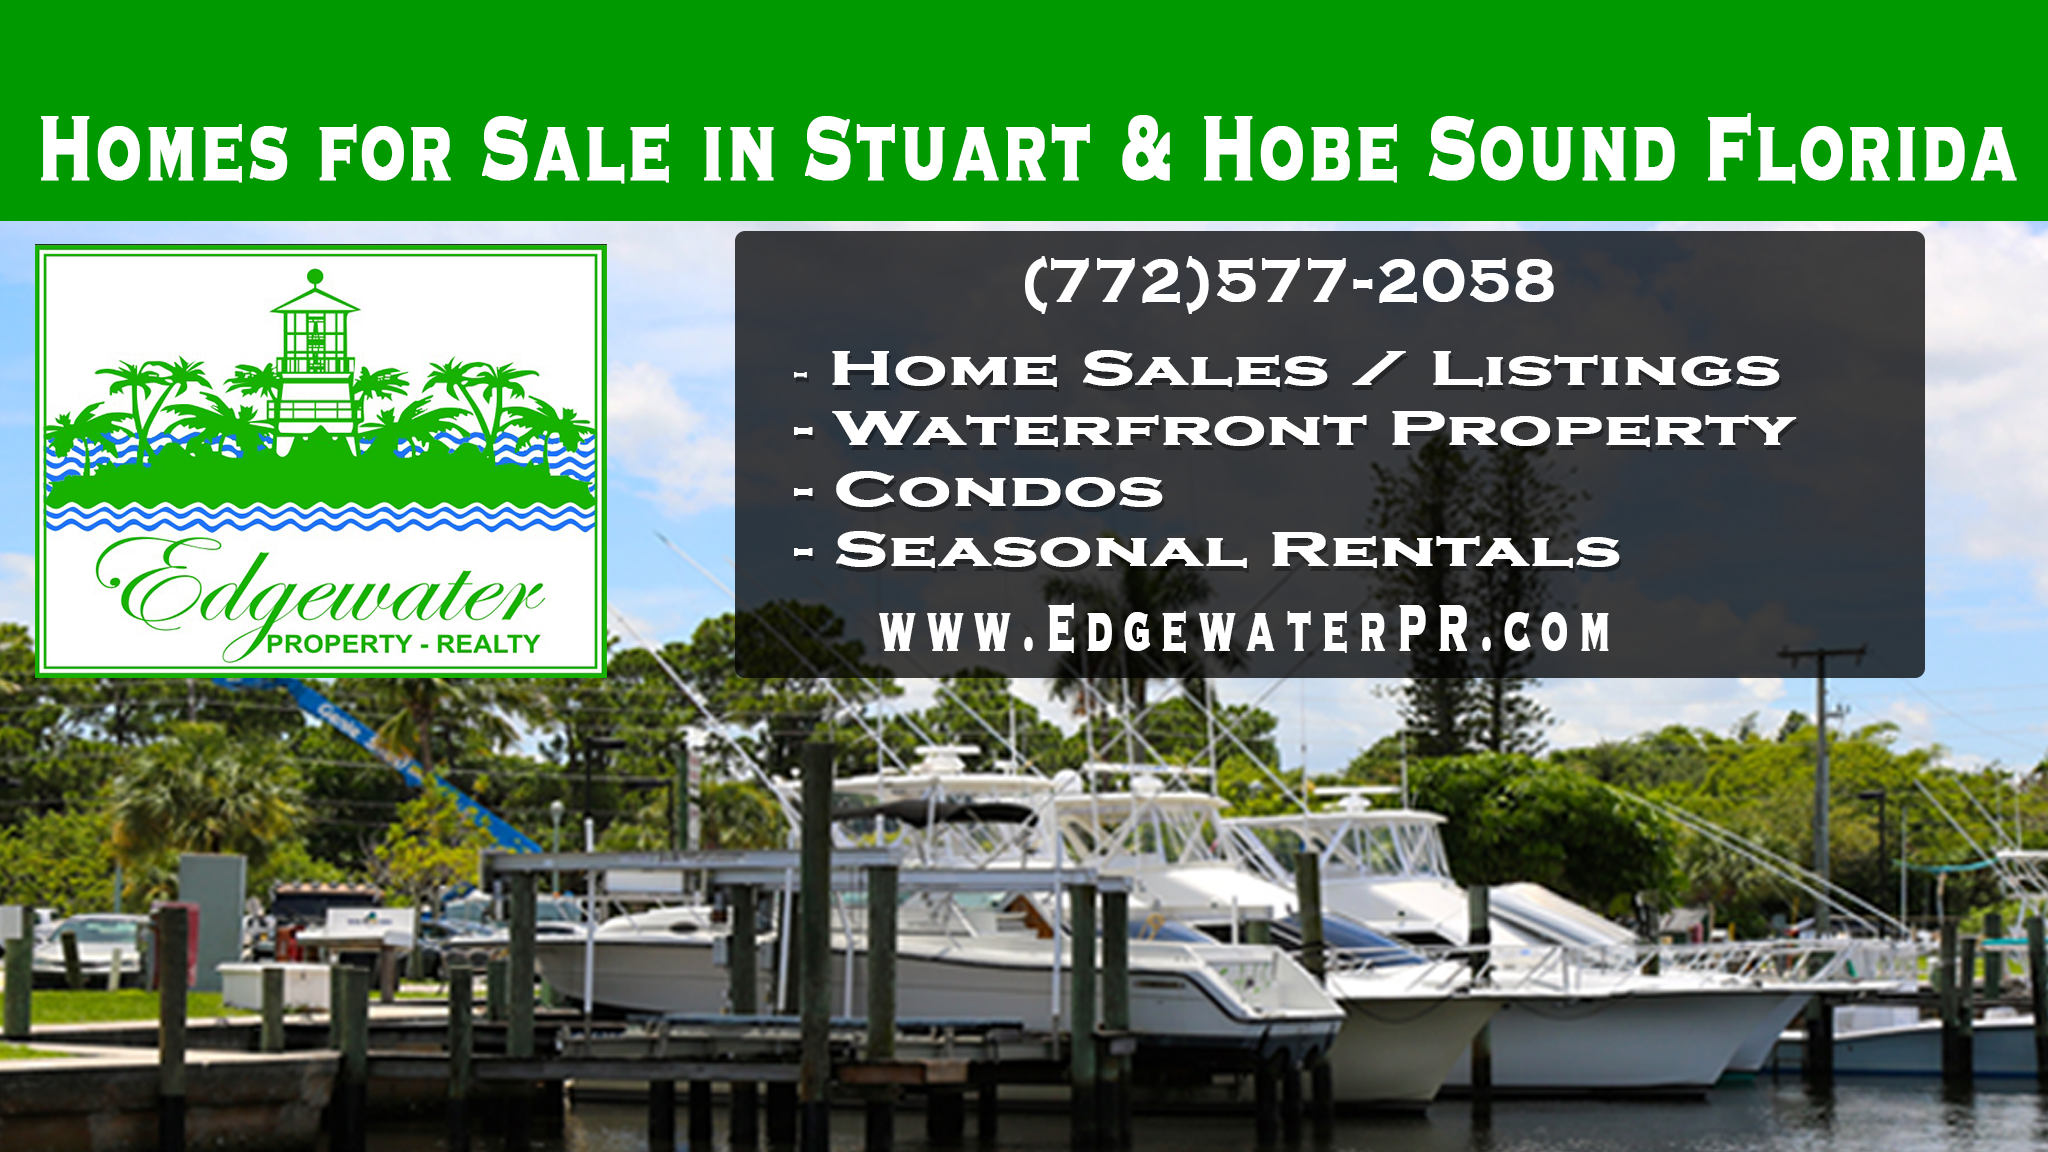 Stuart FL Real Estate Company